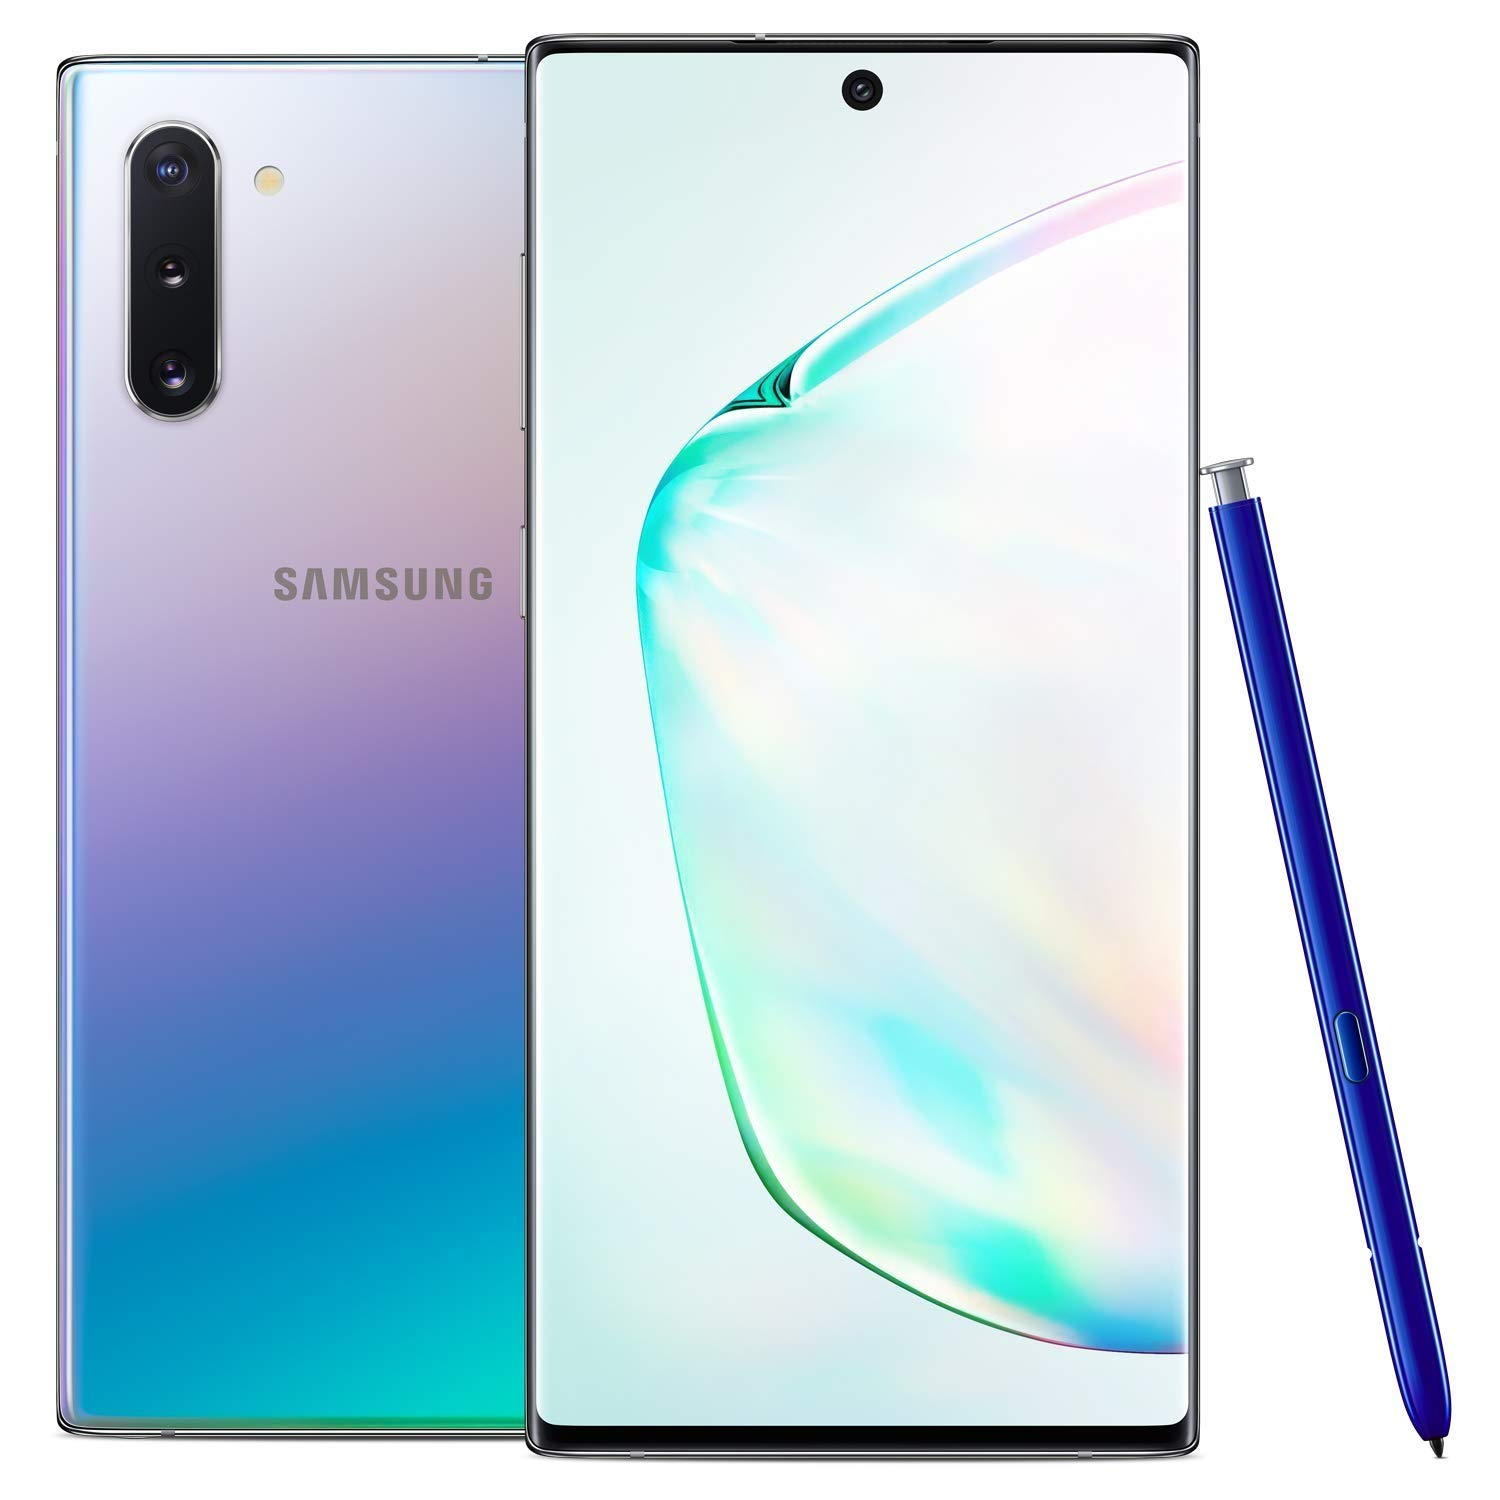 Samsung Galaxy Note 10 N970U 256GB Android Smartphone Unlocked in Aura Glow